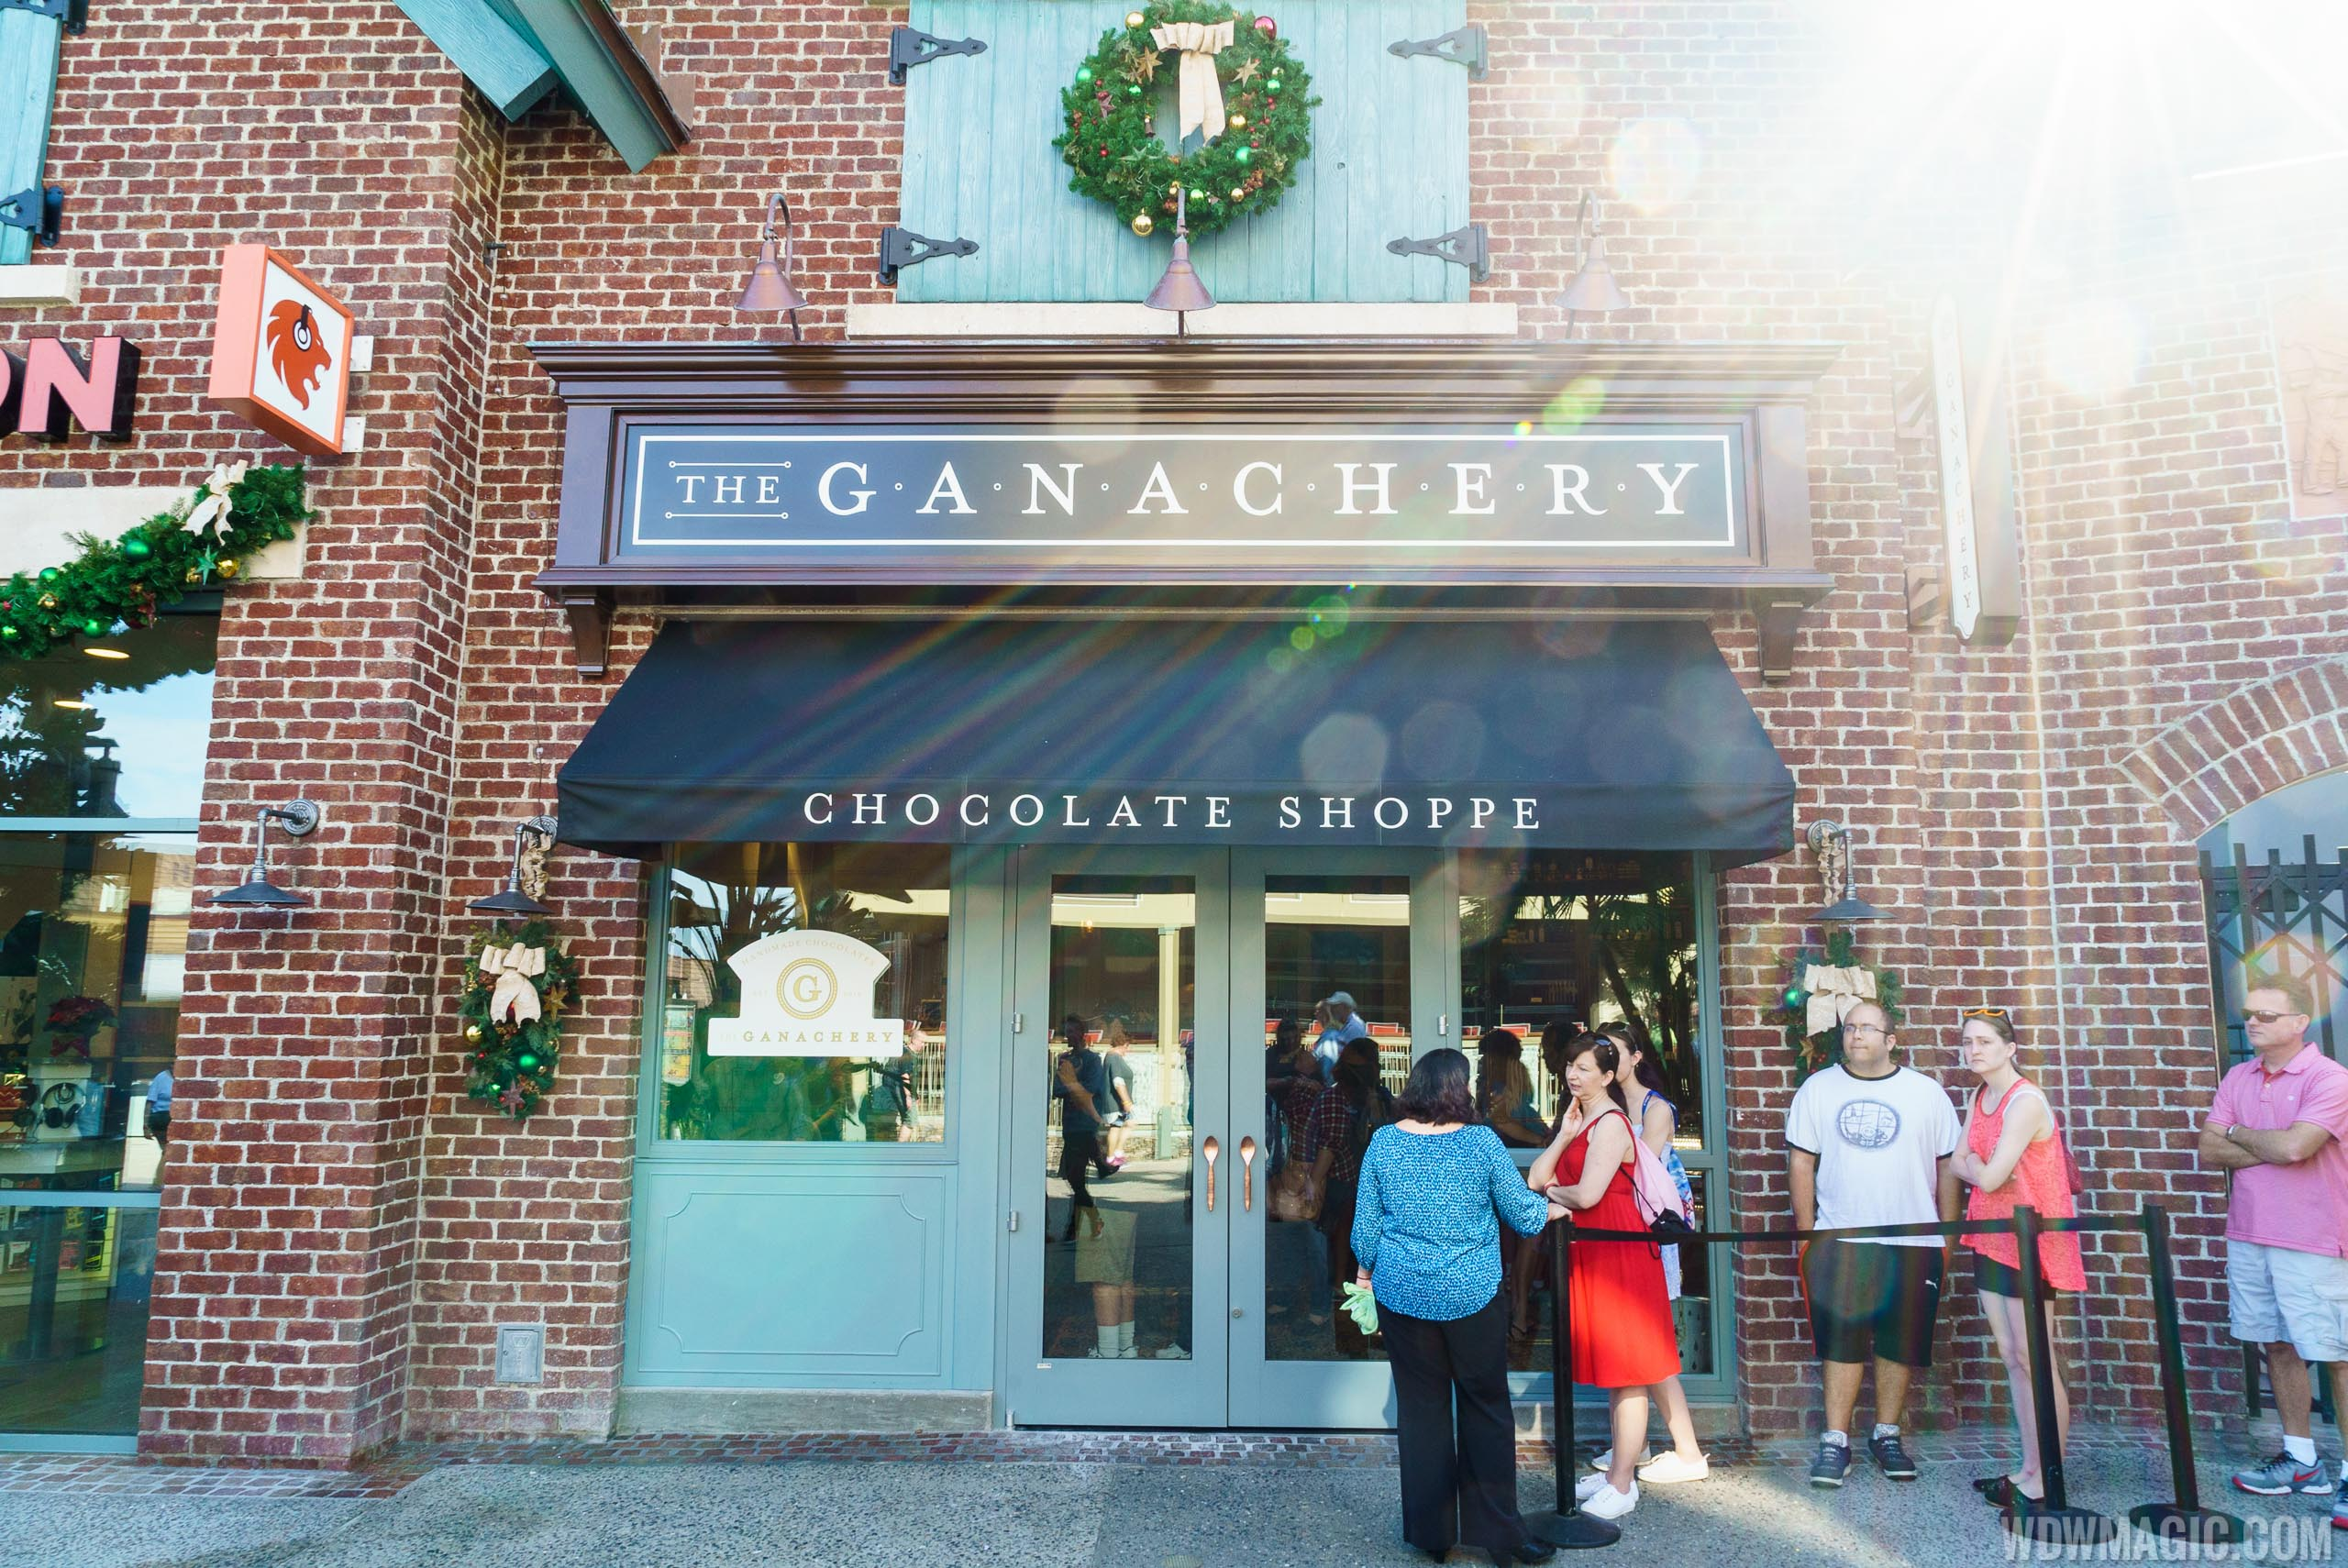 The Ganachery overview